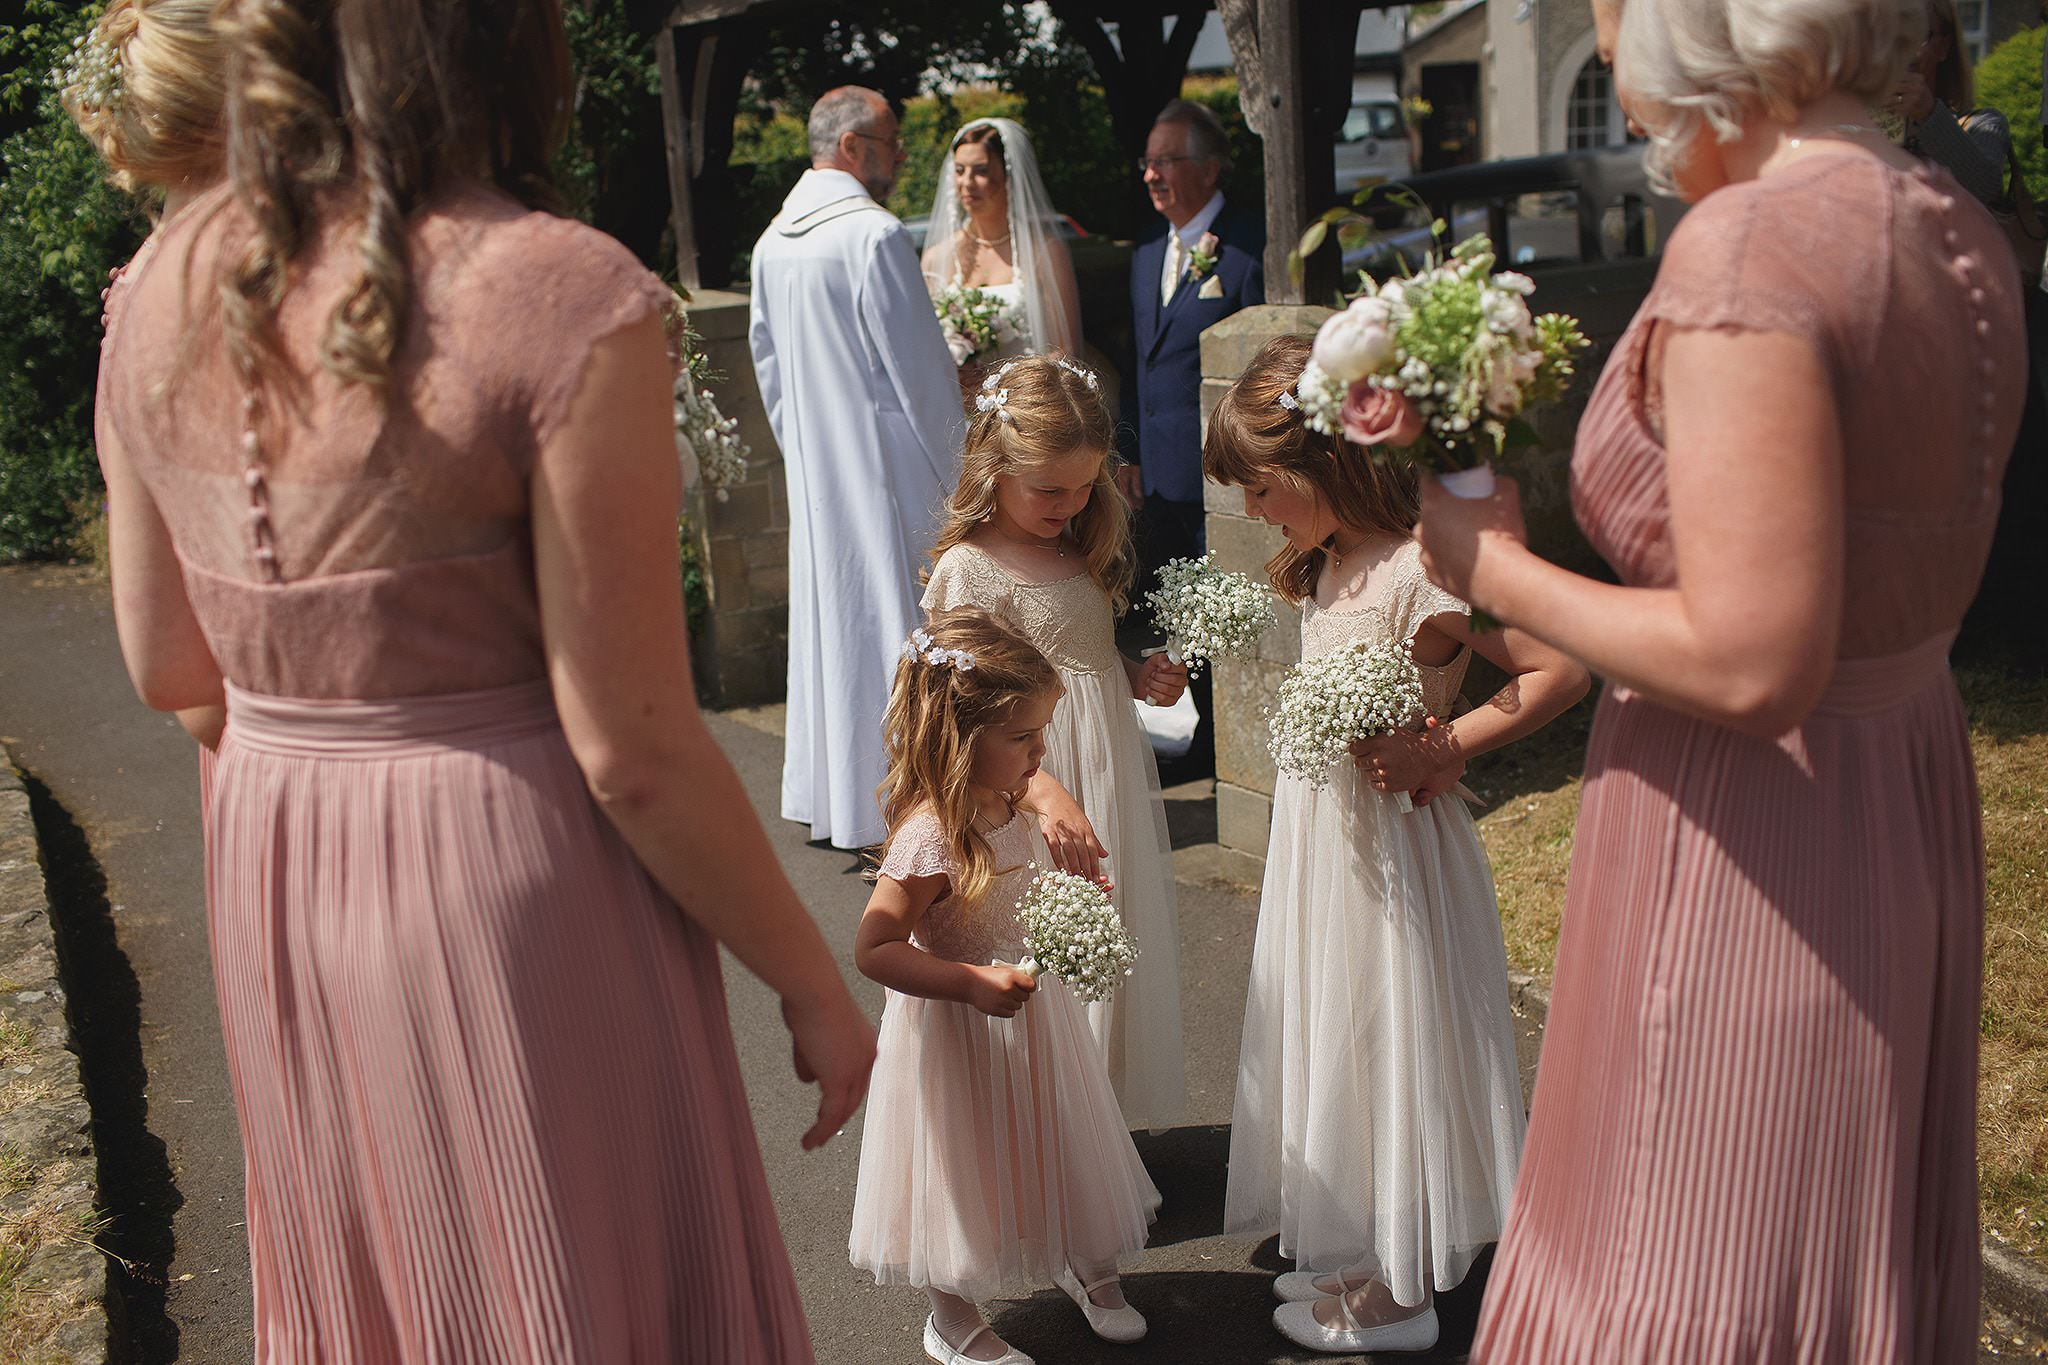 Bride and bridesmaids arriving at Browsholme Hall wedding.